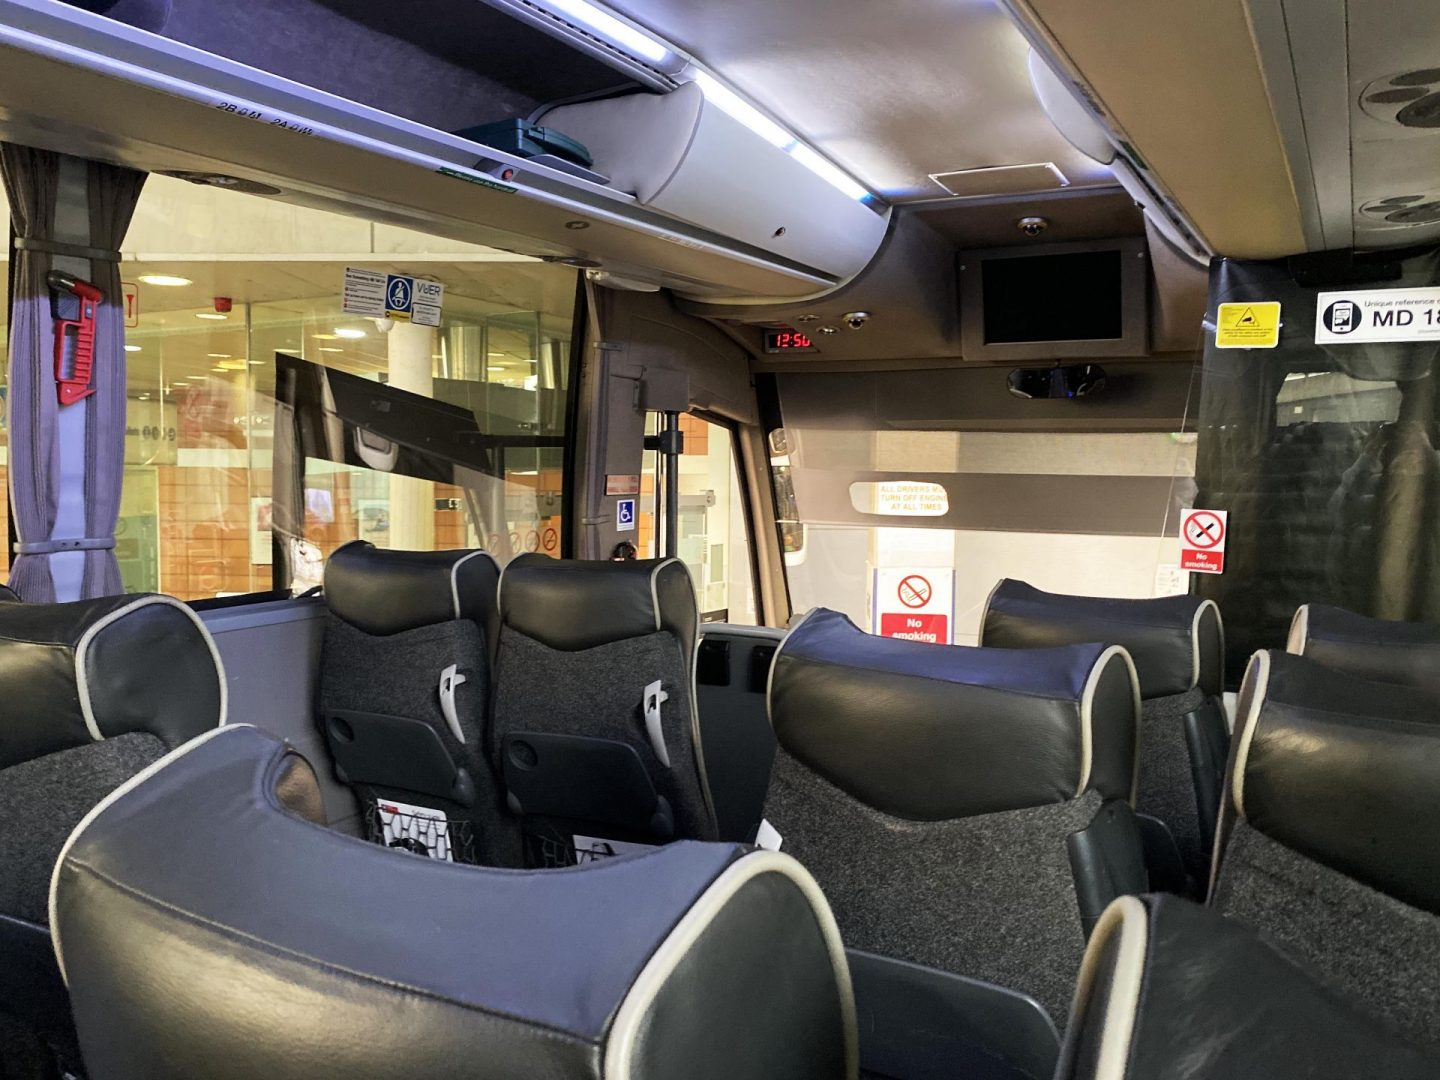 Interior National Express Coach